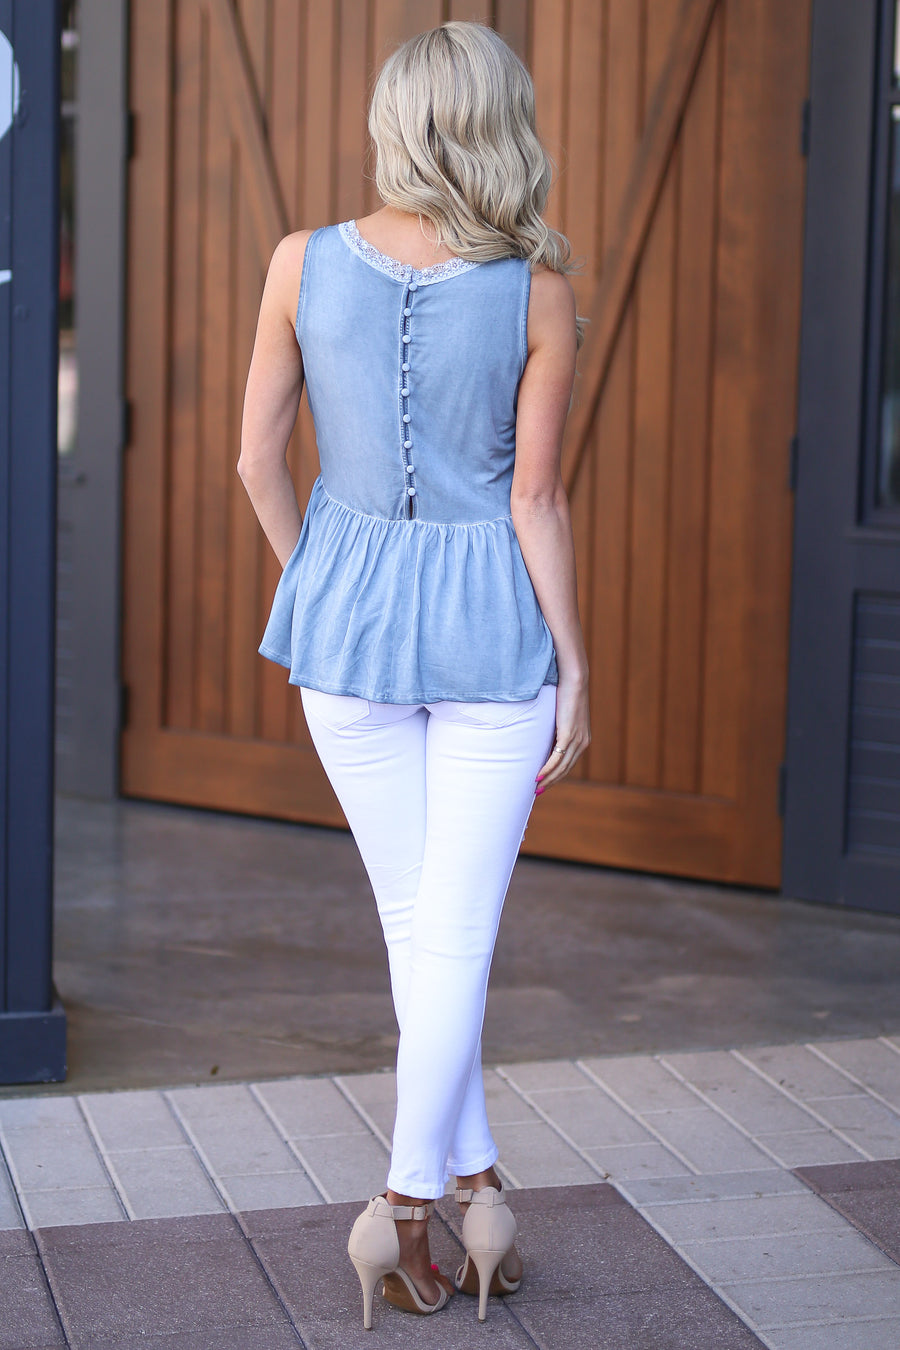 Ocean View Top - Dusty Blue v-neck tank top, outfit, Closet Candy Boutique